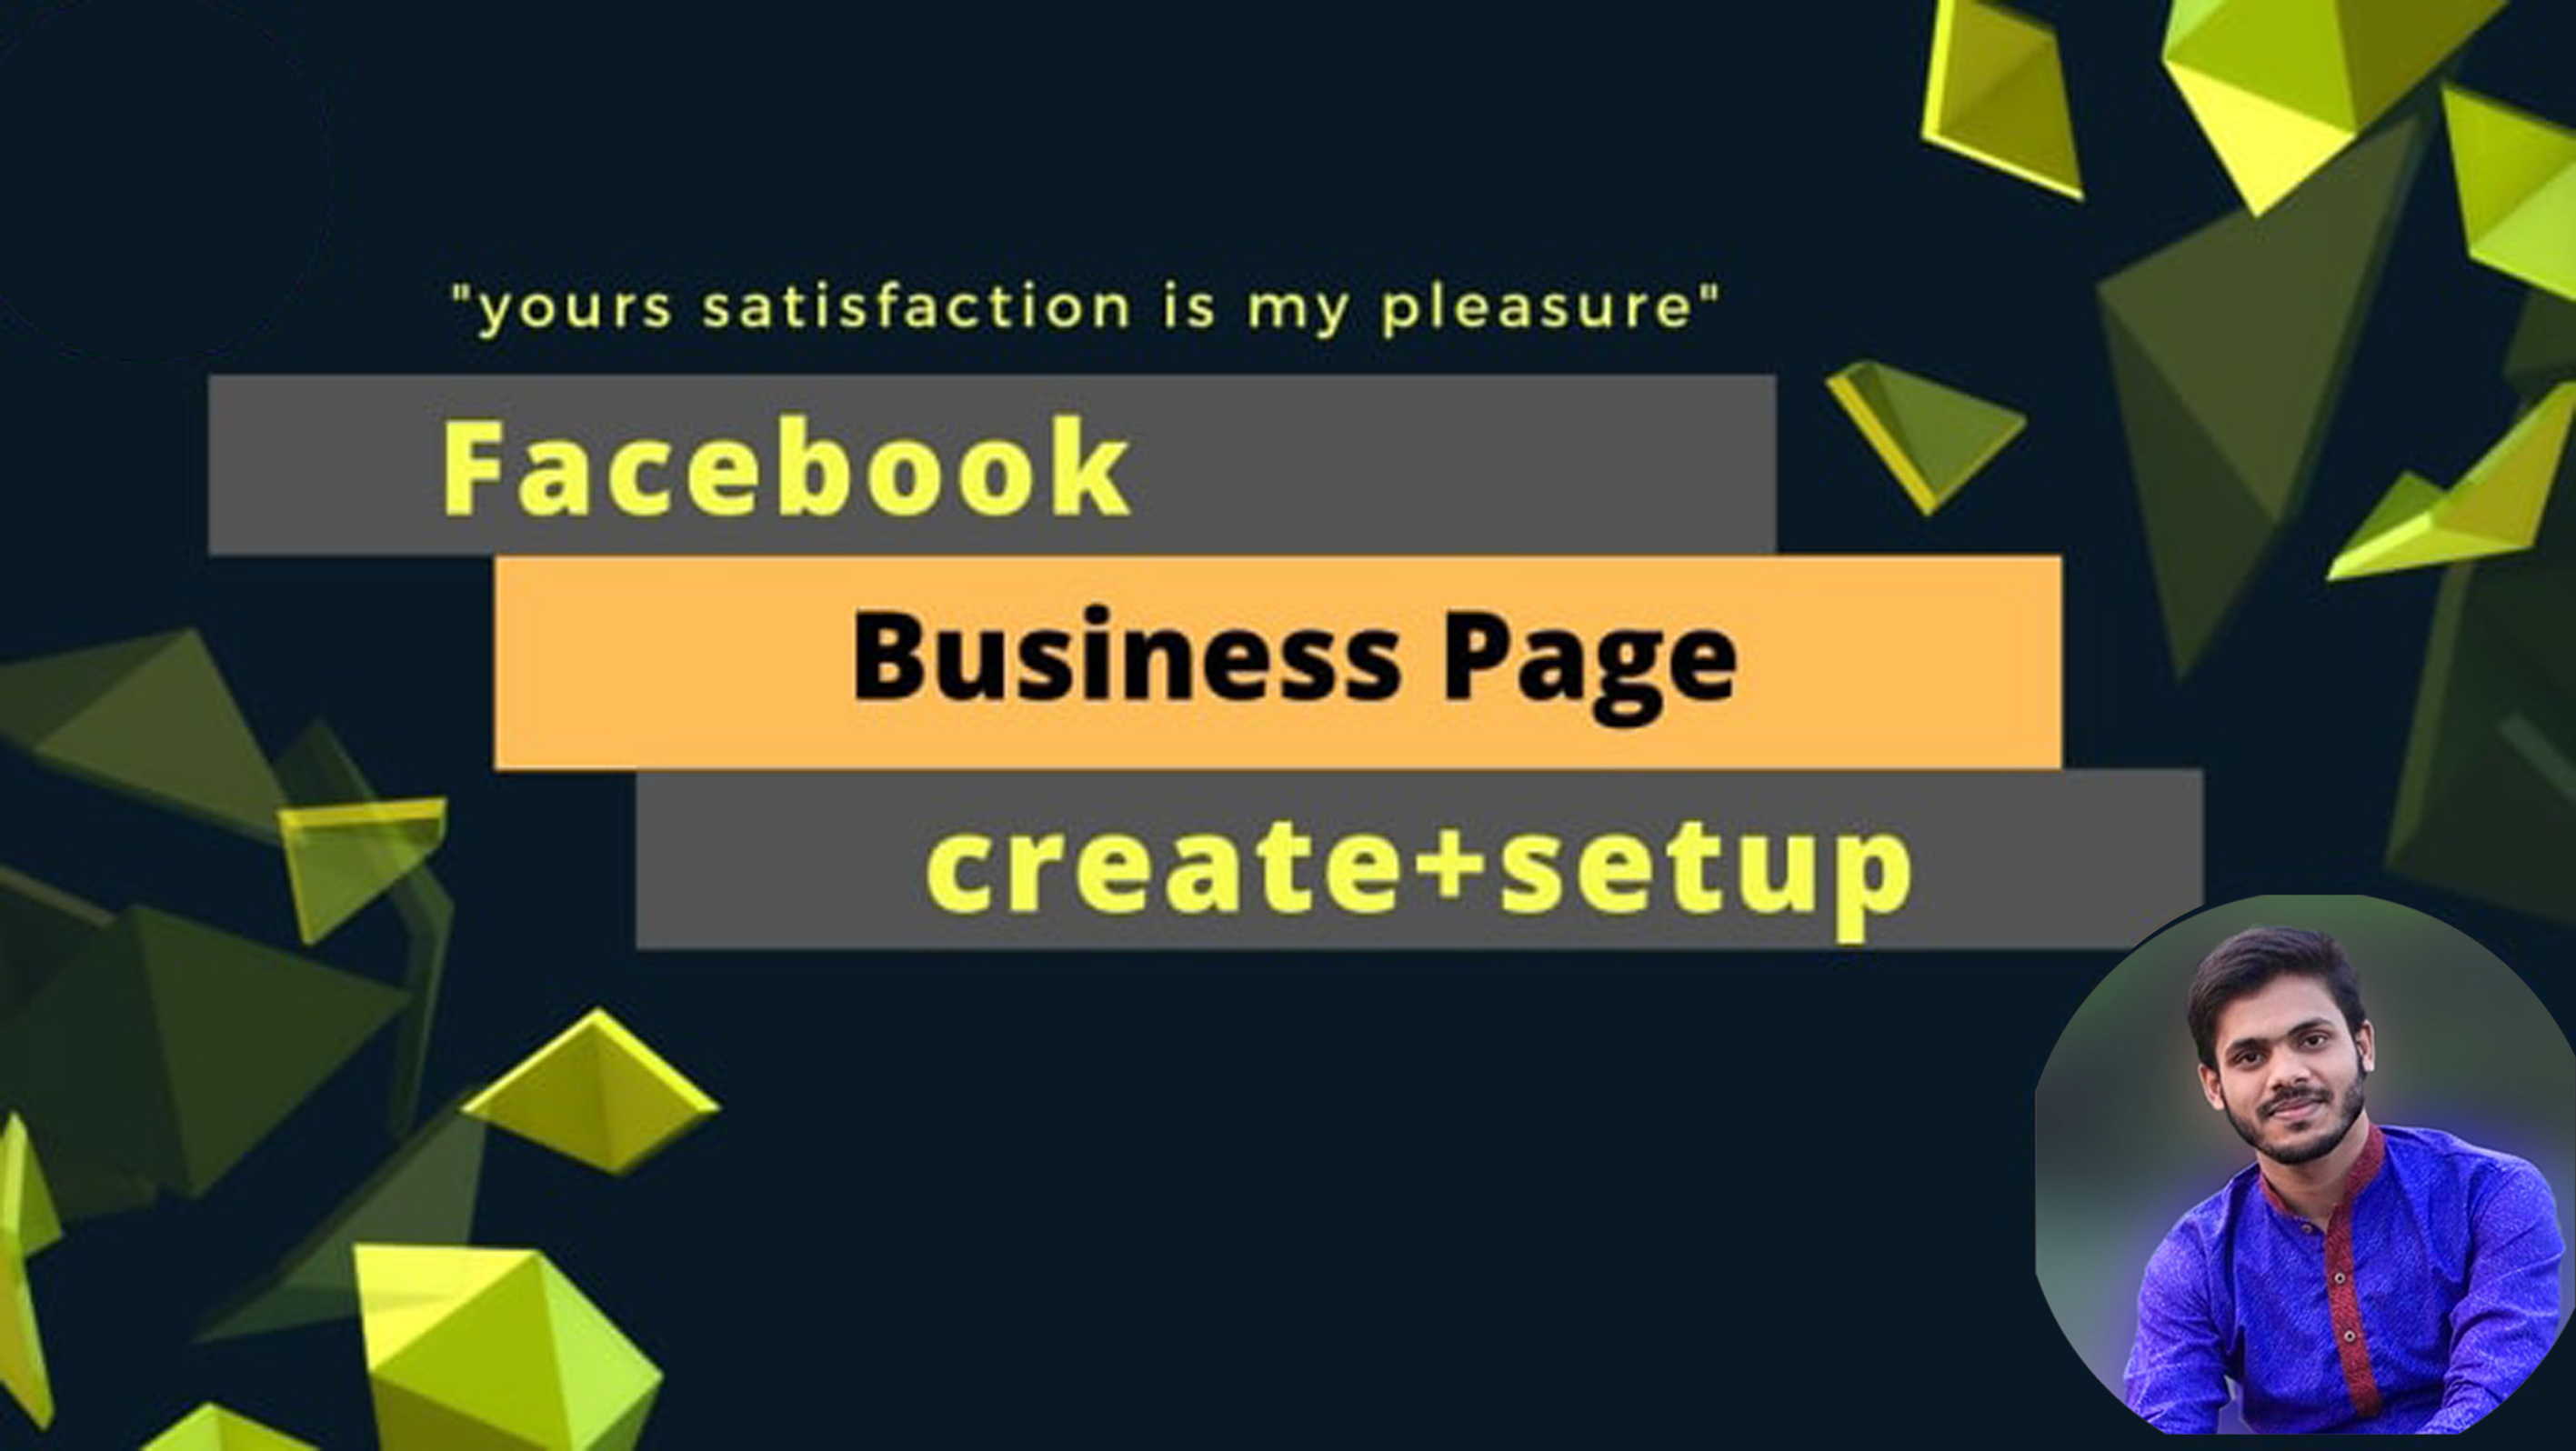 I will create setup and optimize your Facebook business page